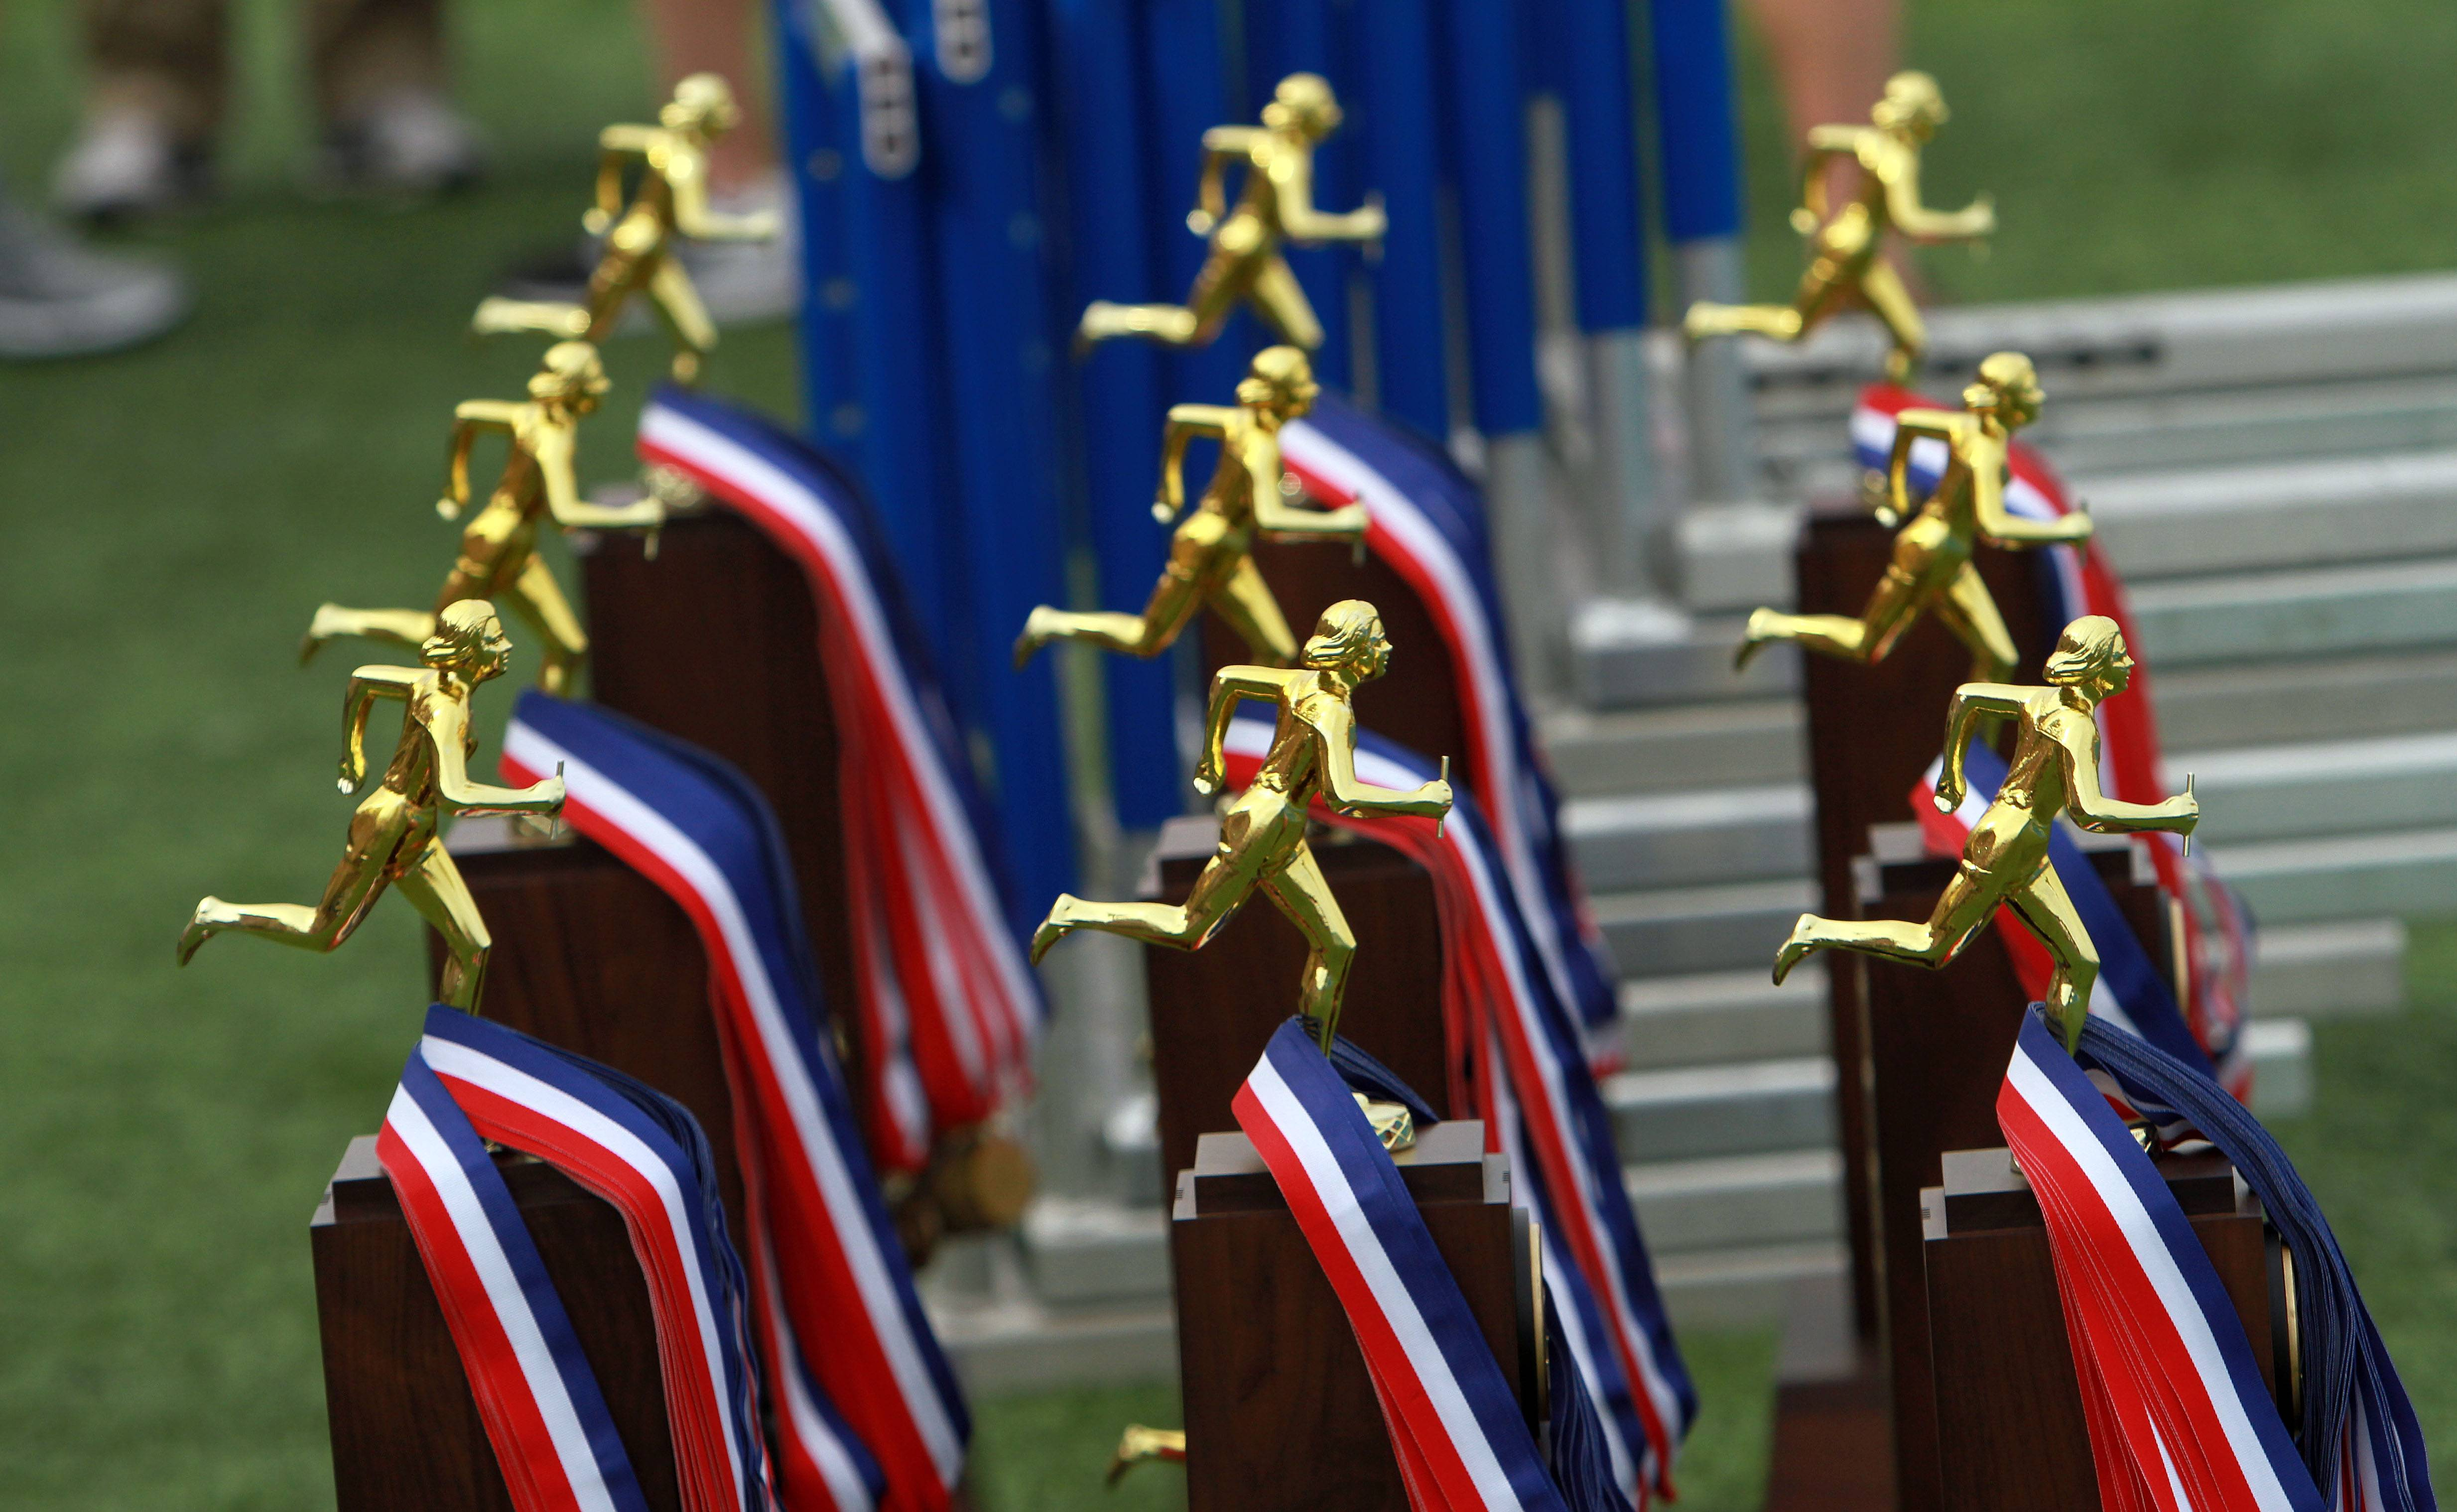 Trophies await their teams during the girls track and field state finals at Eastern Illinois University in Charleston Saturday.